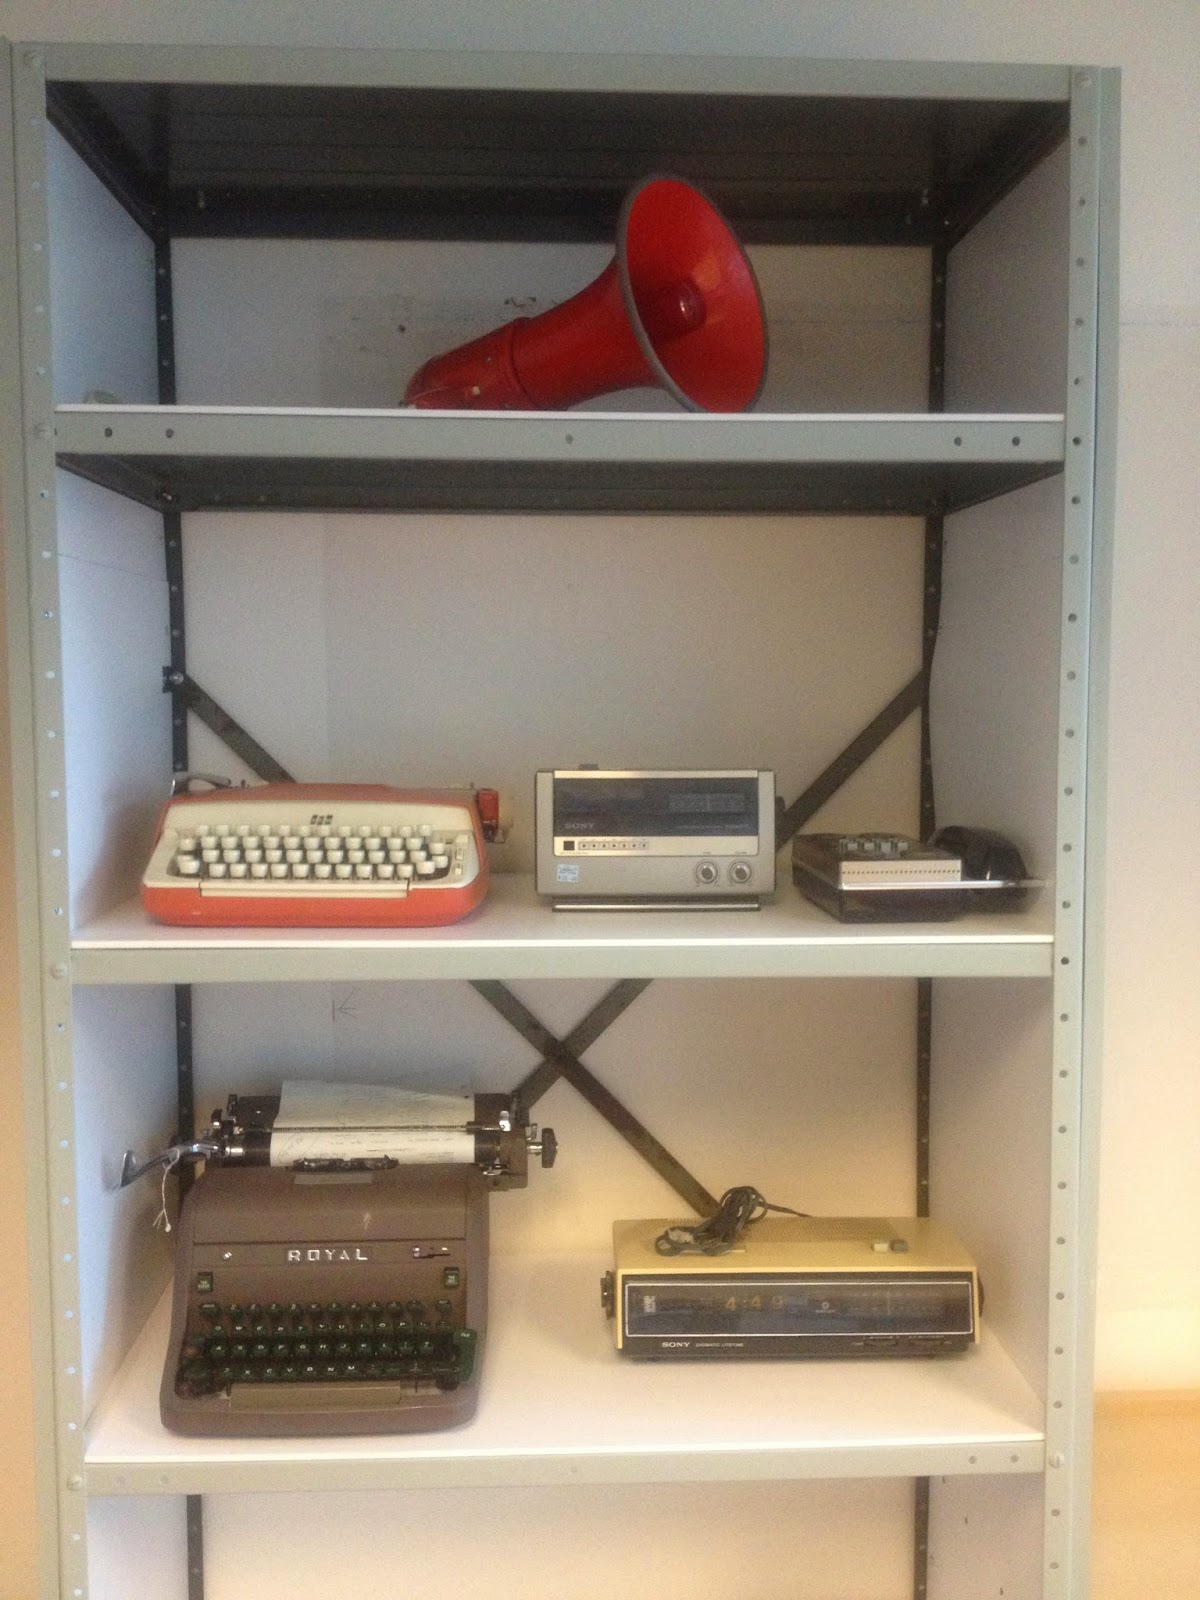 Collected artifacts on shelves from the late seventies. A red bullhorn, two typewriters, a radio, clock, and dial pad phone sit on the shelves.